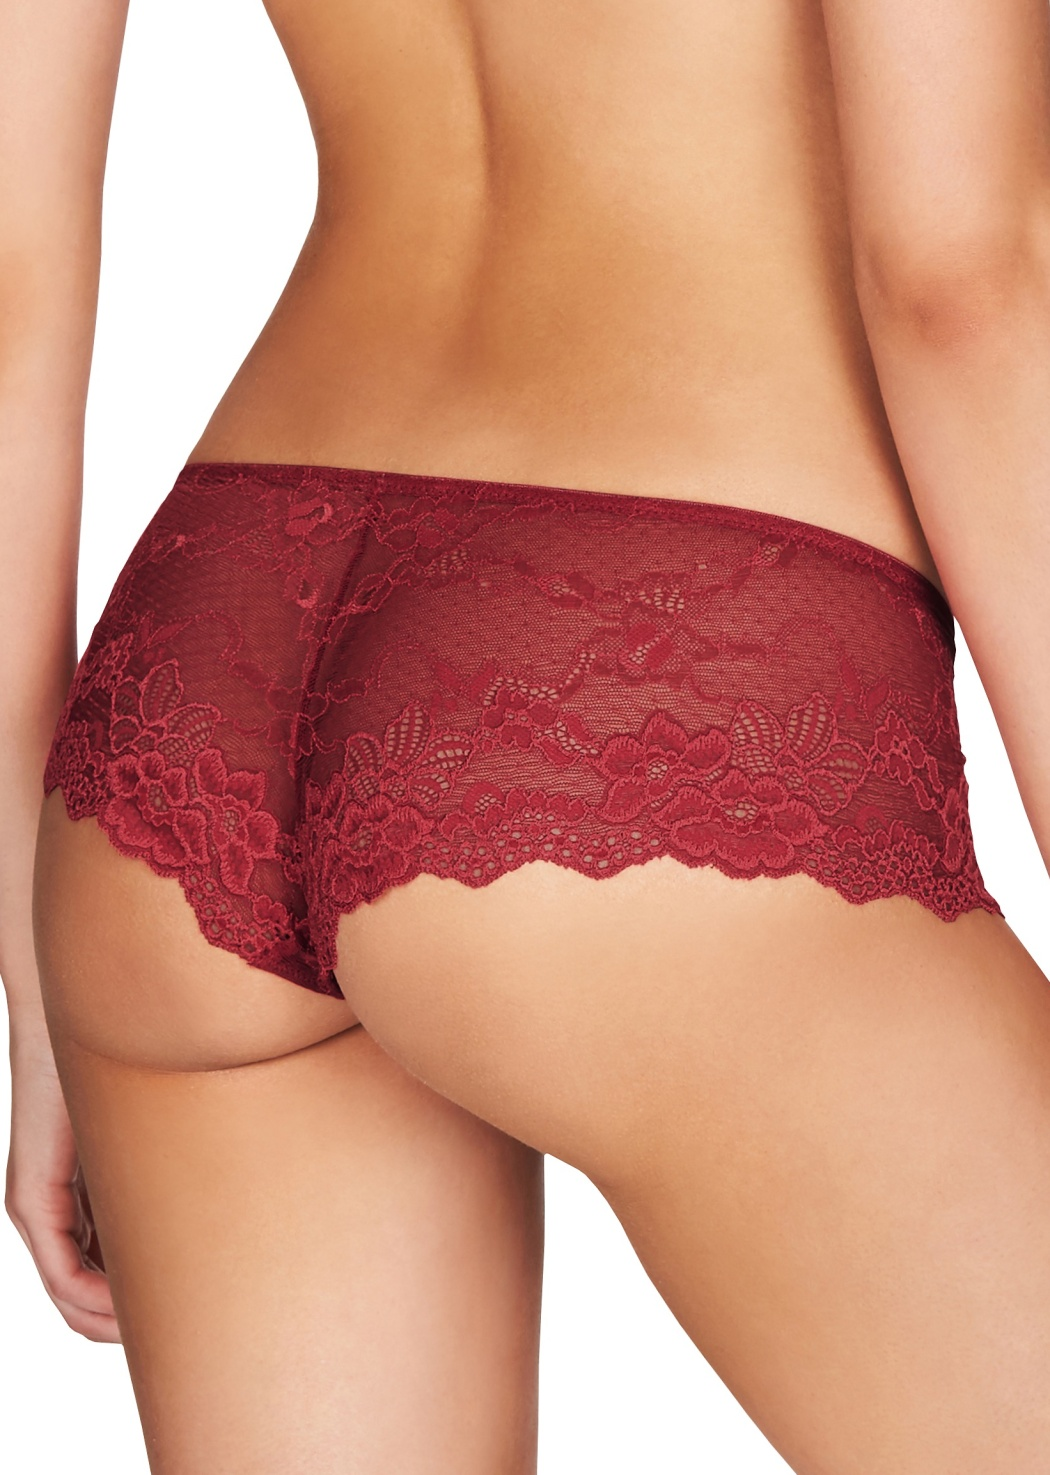 dcff6e9a16c Brazilky MY FIT LACE Pleasure State P38-4053